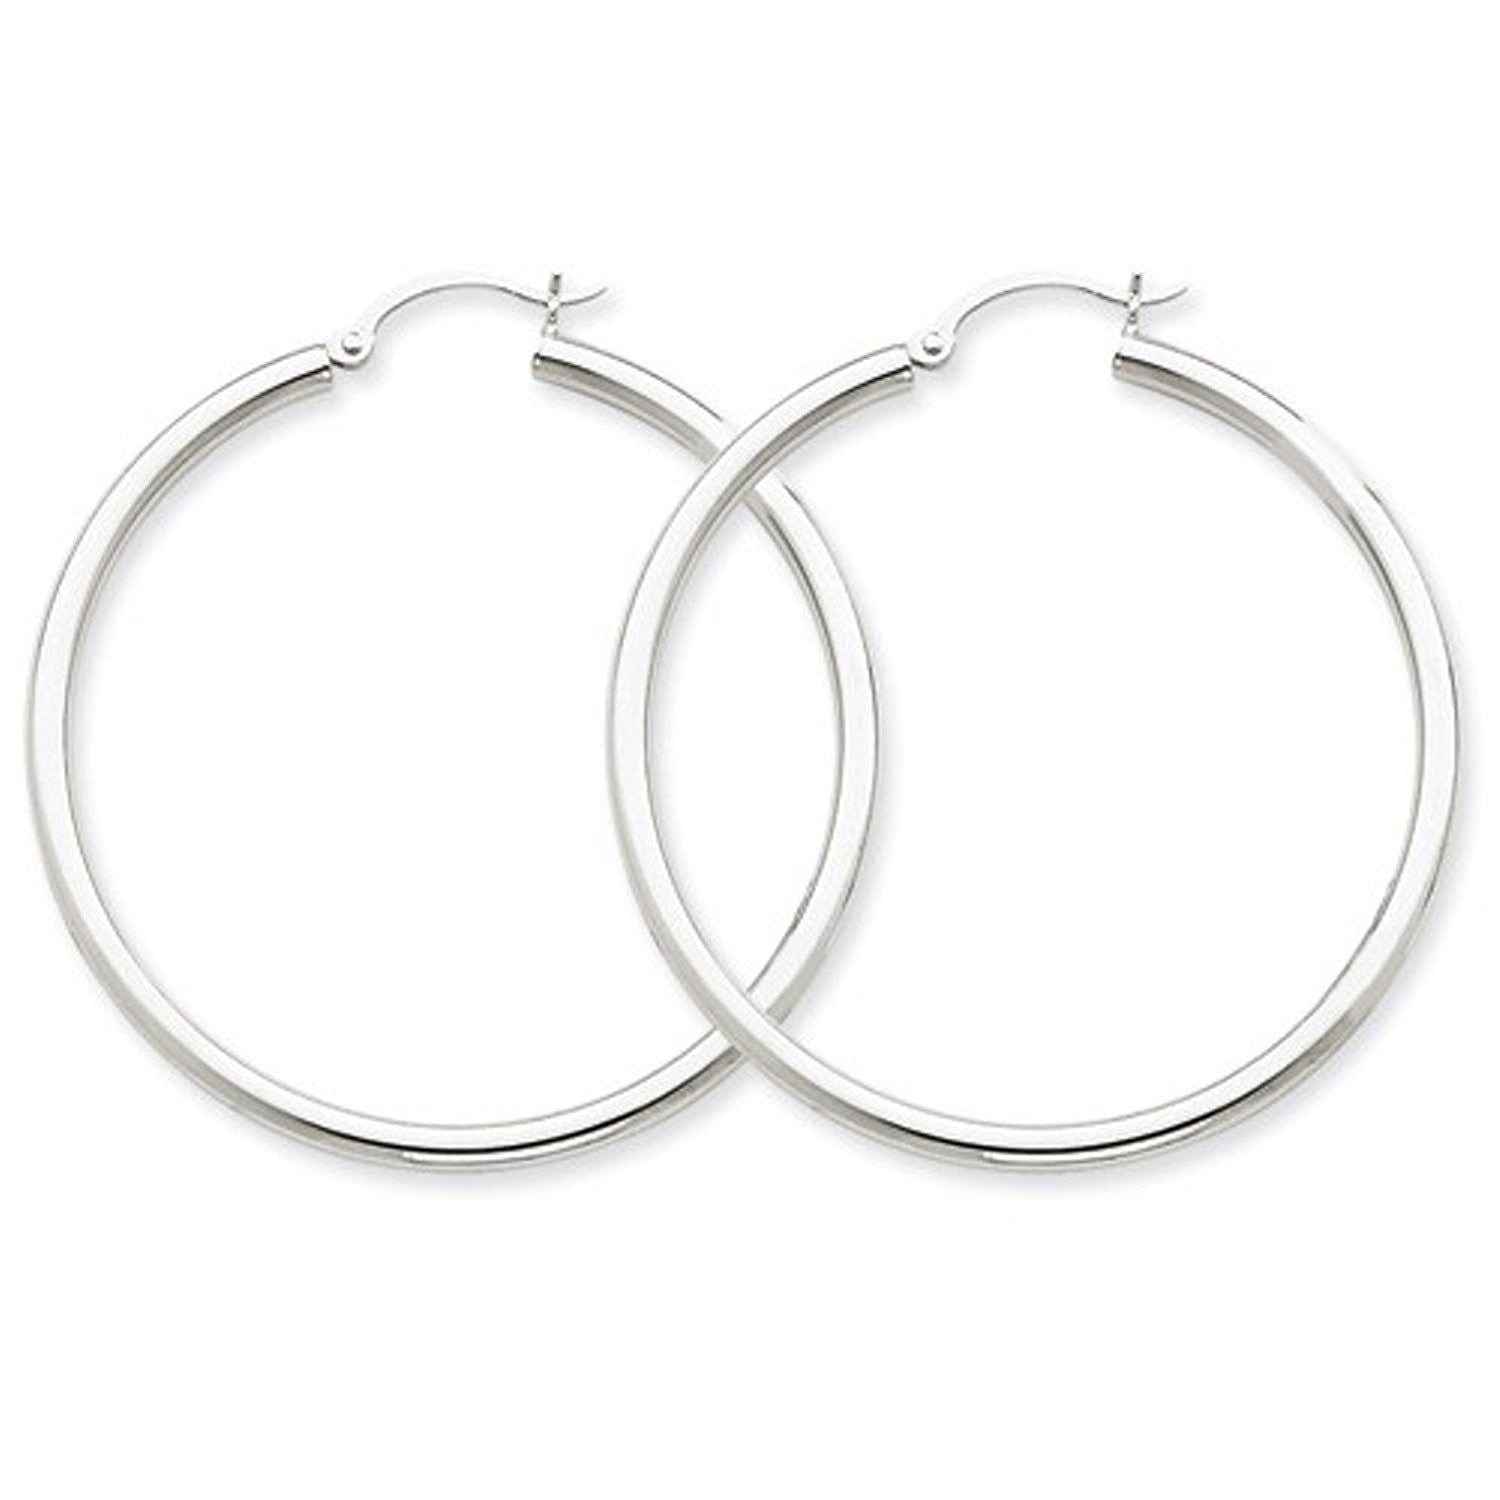 14K White Gold 45mm x 2.5mm Classic Round Hoop Earrings